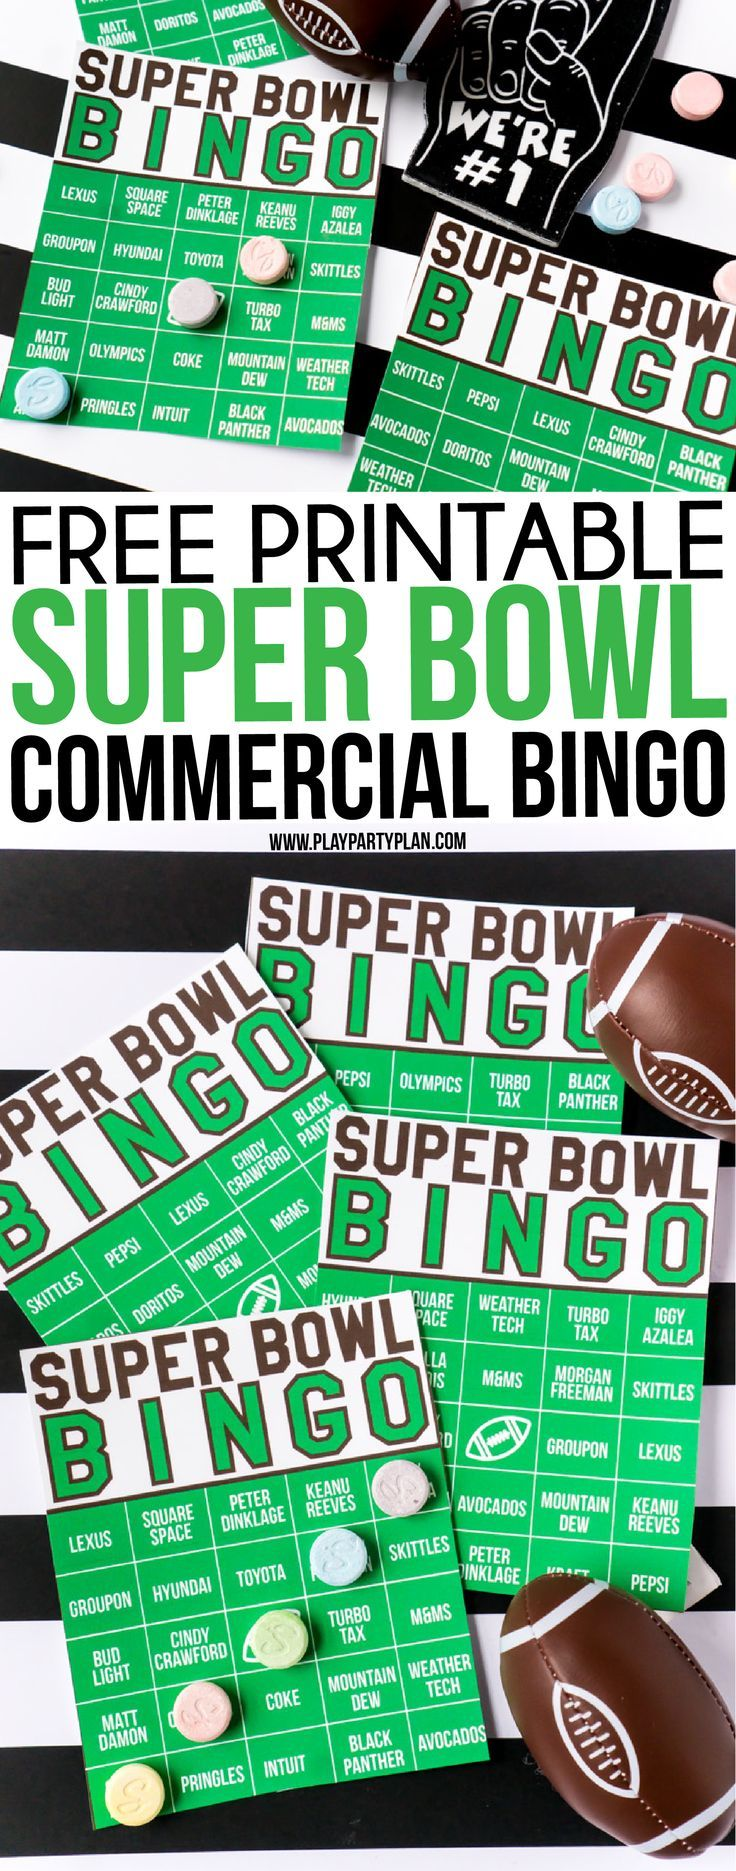 birthday party invitation templates free printable%0A These Super Bowl commercial bingo cards are one of the best Super Bowl party  games ever  Just print out the printables  hand out on Super Bowl Sunday